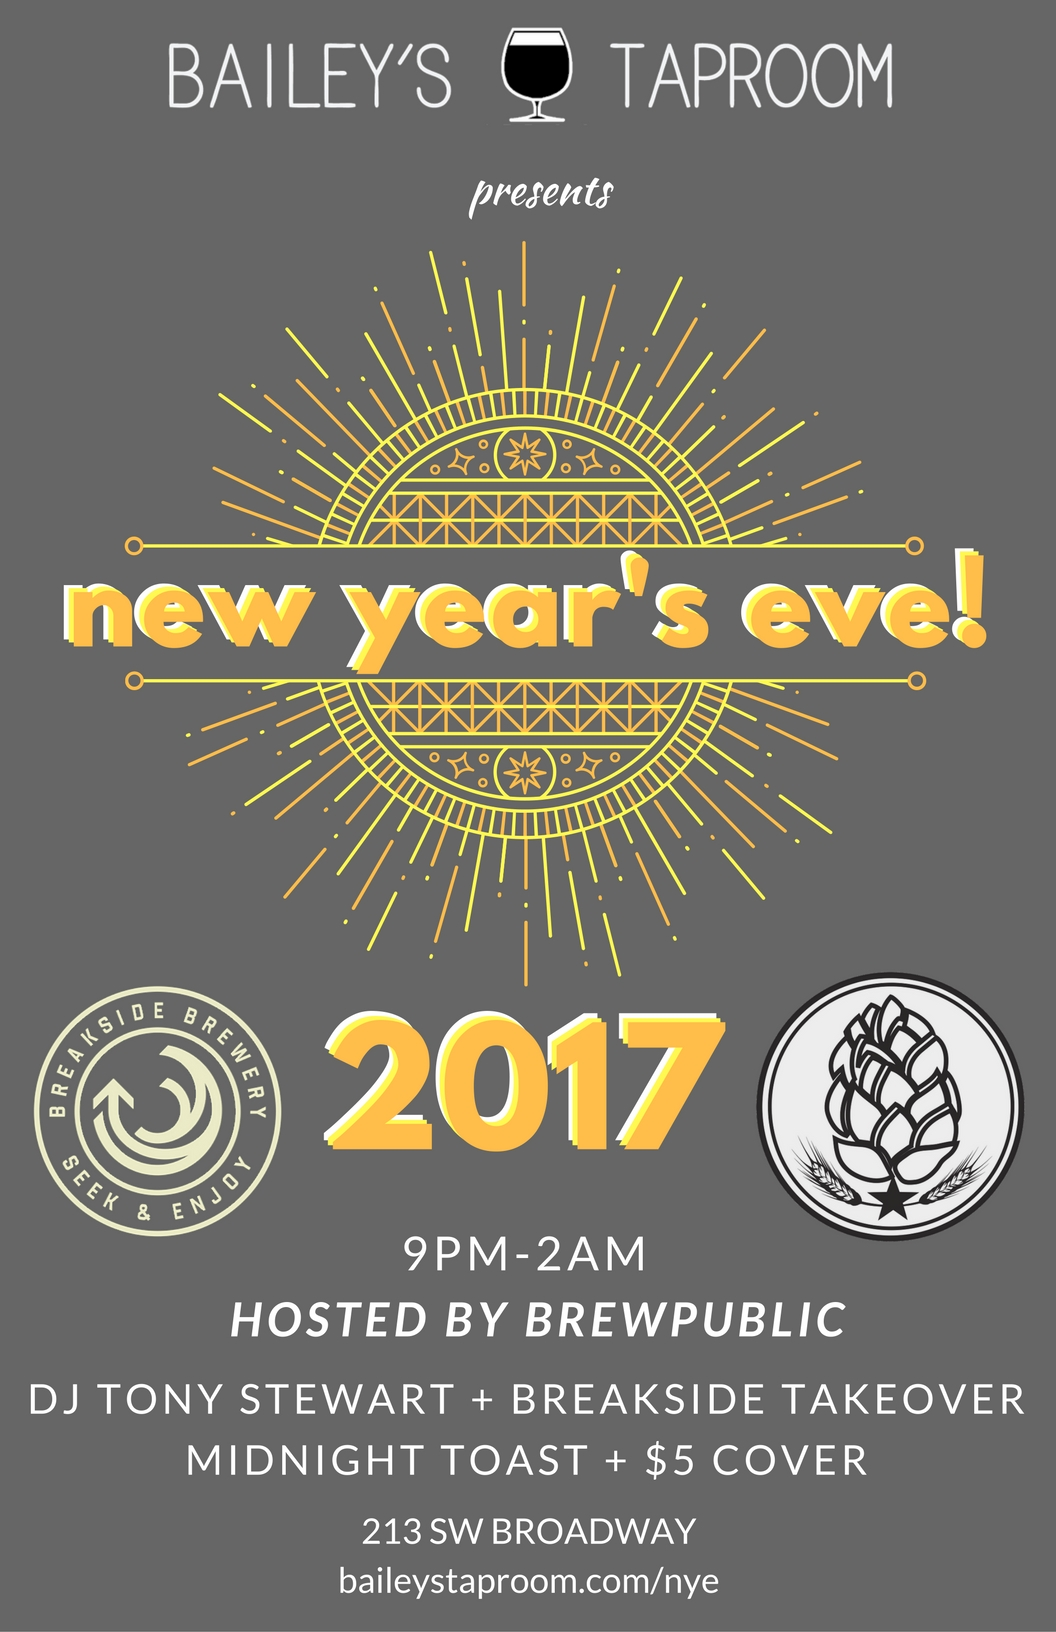 New Years Time Capsule Printable Questionnaire For Kids: Ring In The New Year At Bailey's Taproom New Year's Eve Party